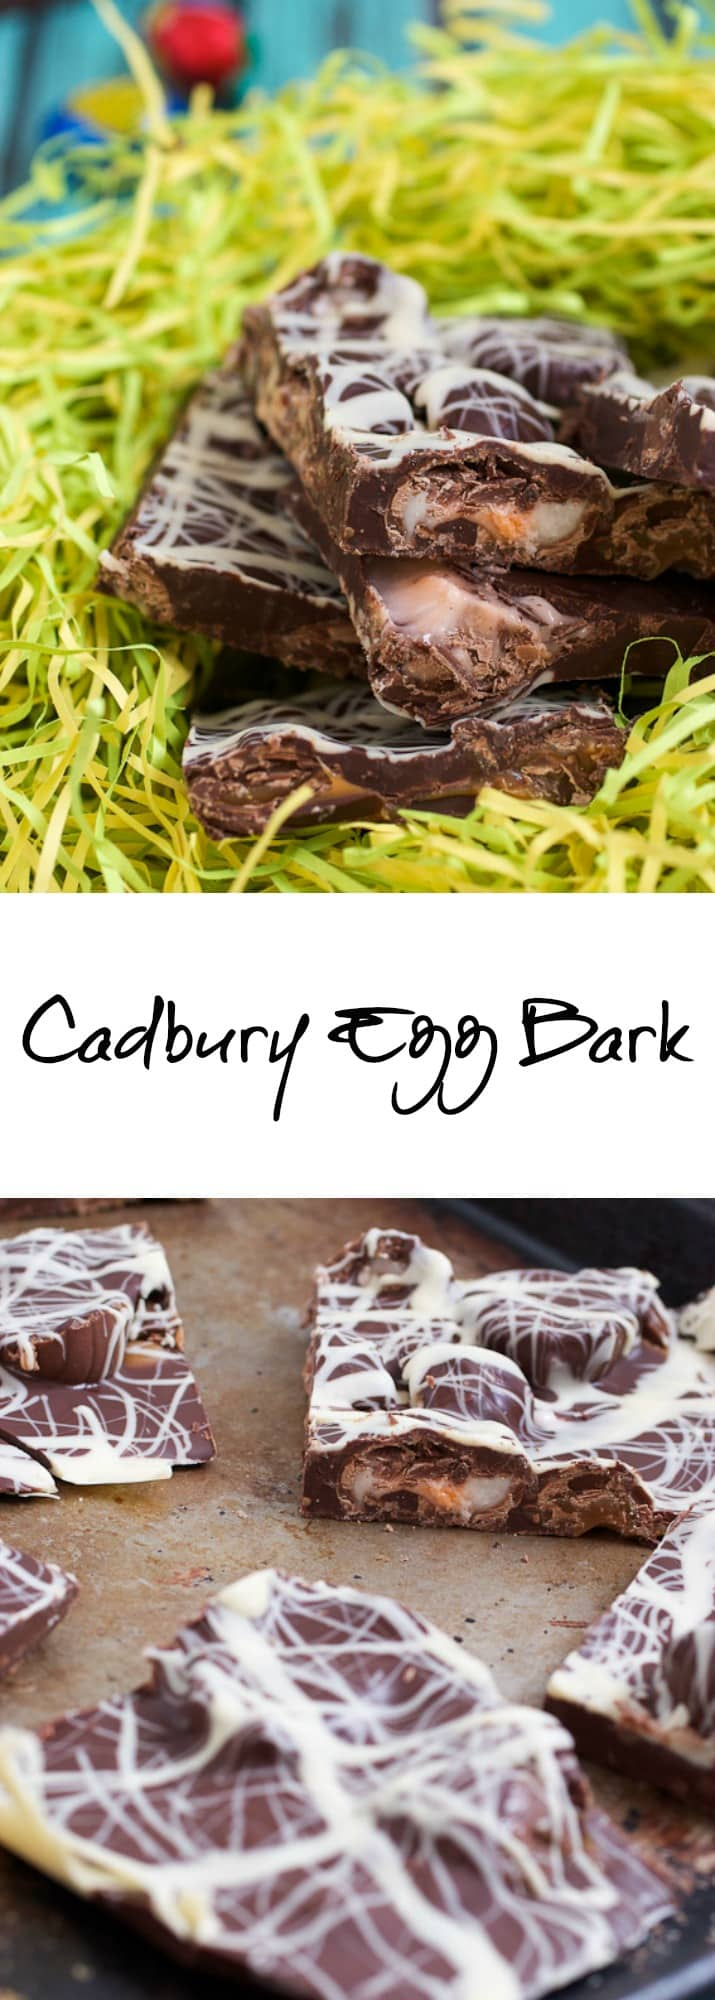 Cadbury Egg Bark